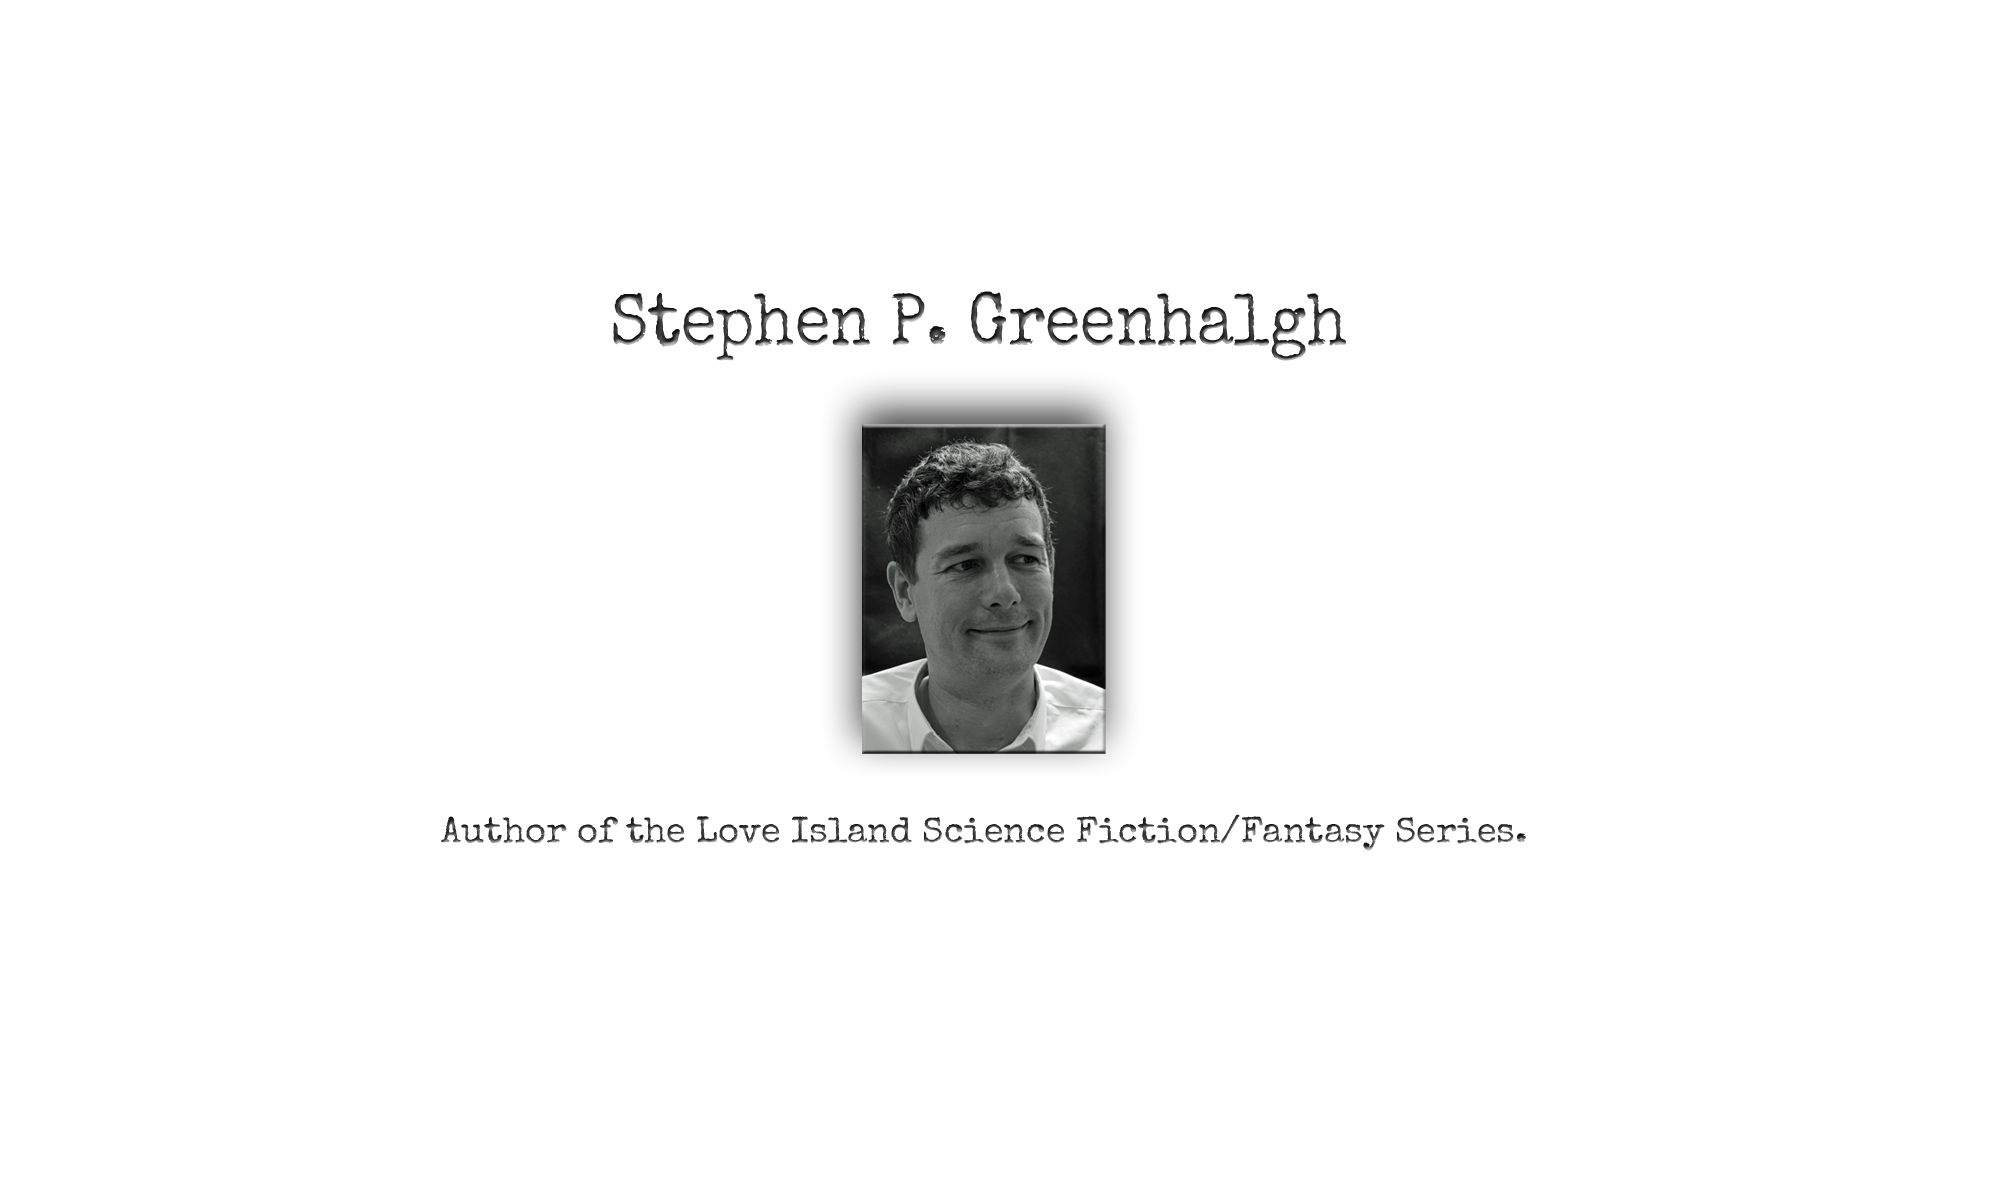 Stephen Greenhalgh.